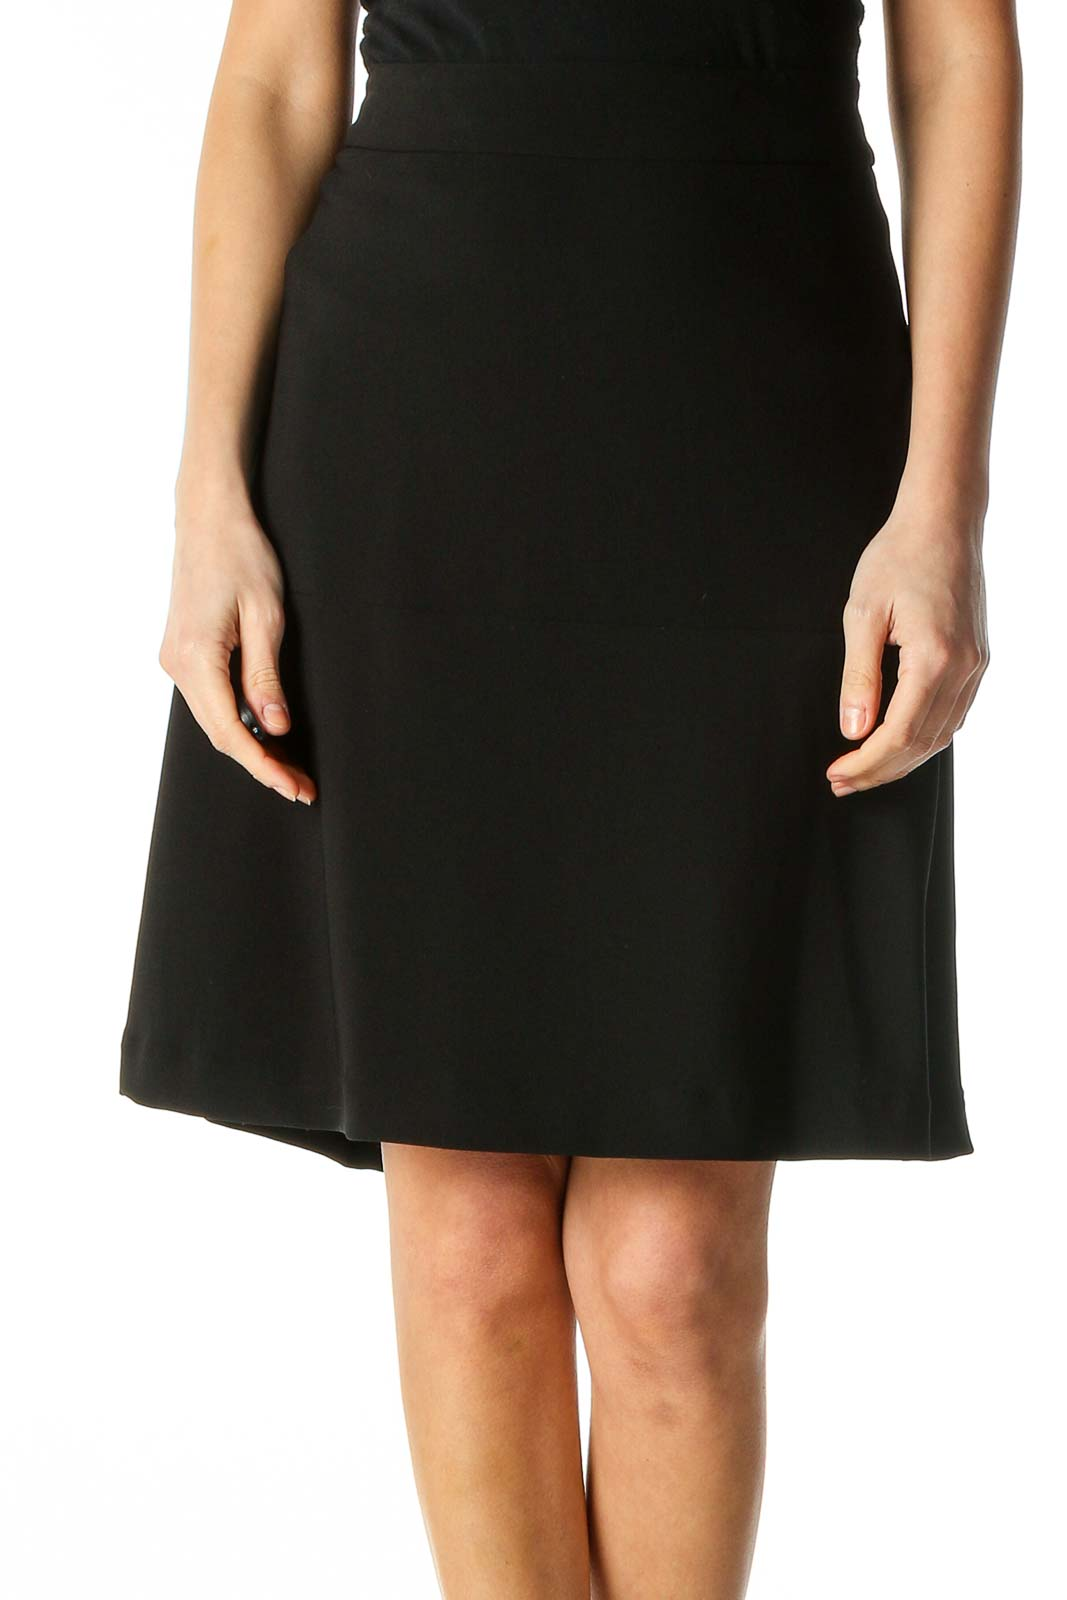 Black Solid Brunch A-Line Skirt Front